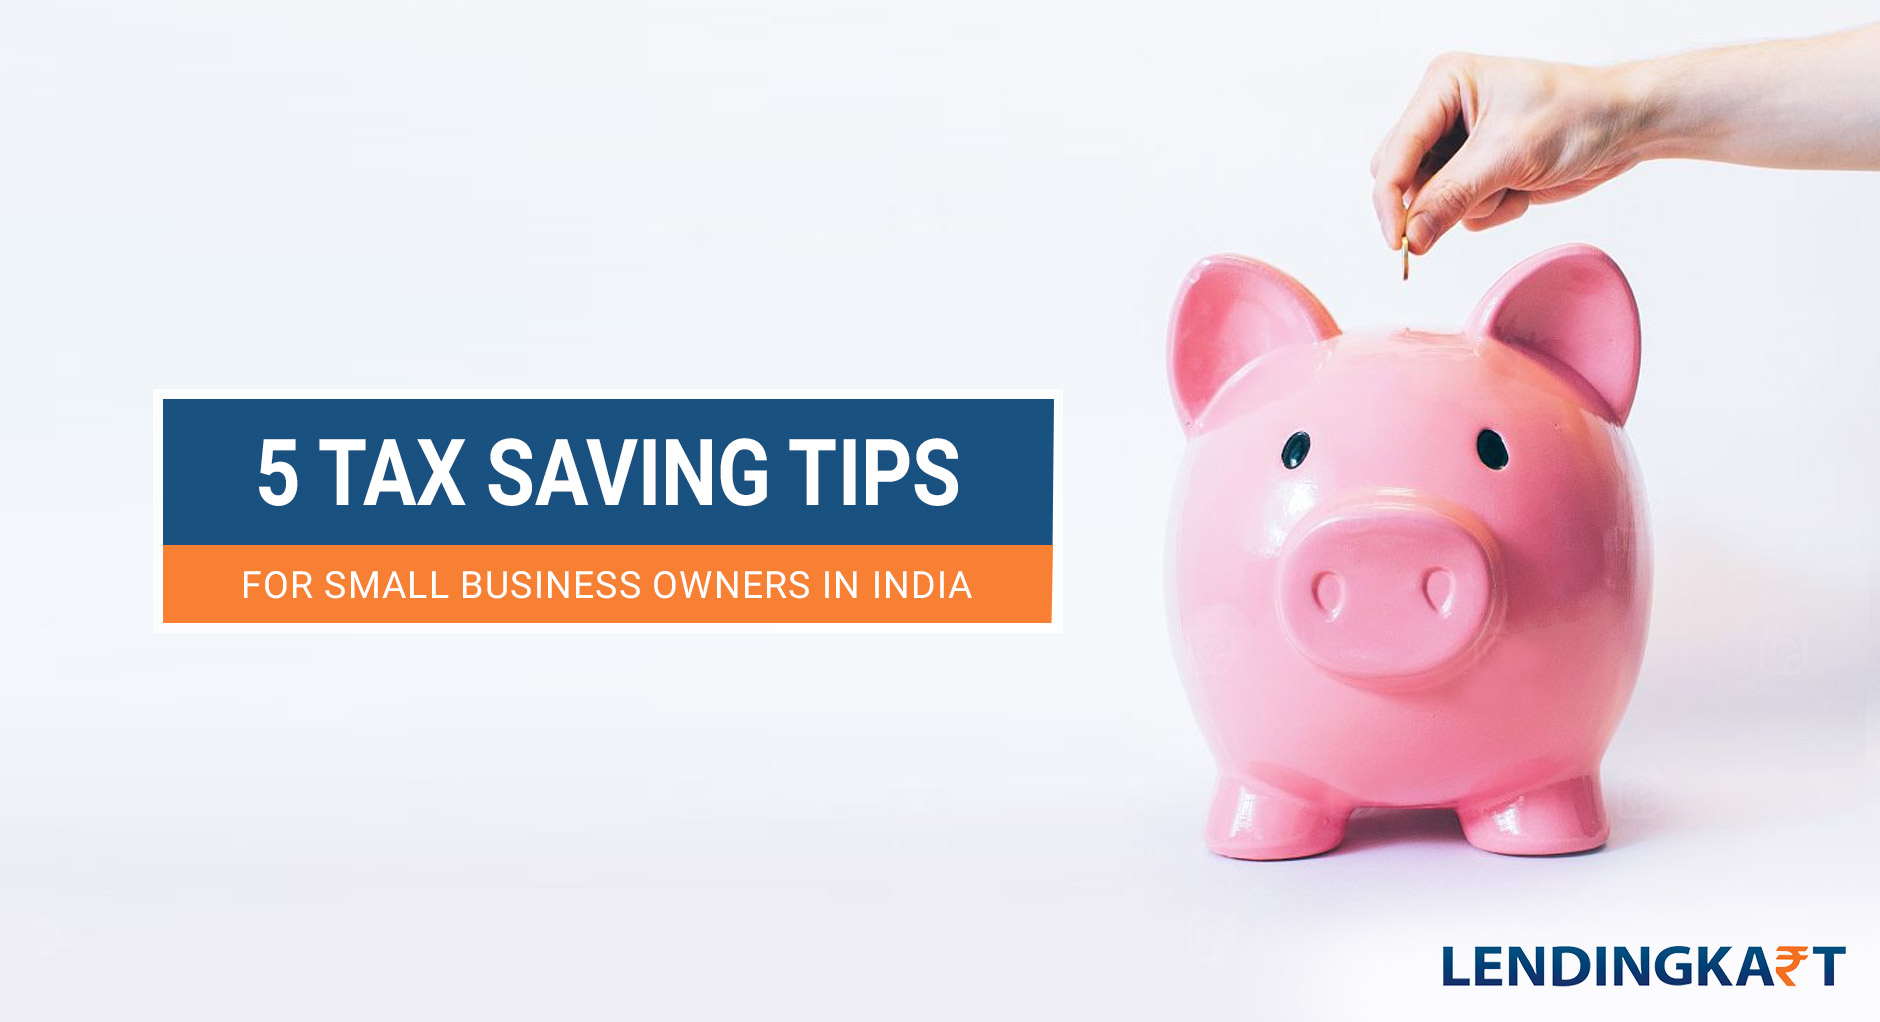 5 Tax Saving Tips for Small Business Owners in India